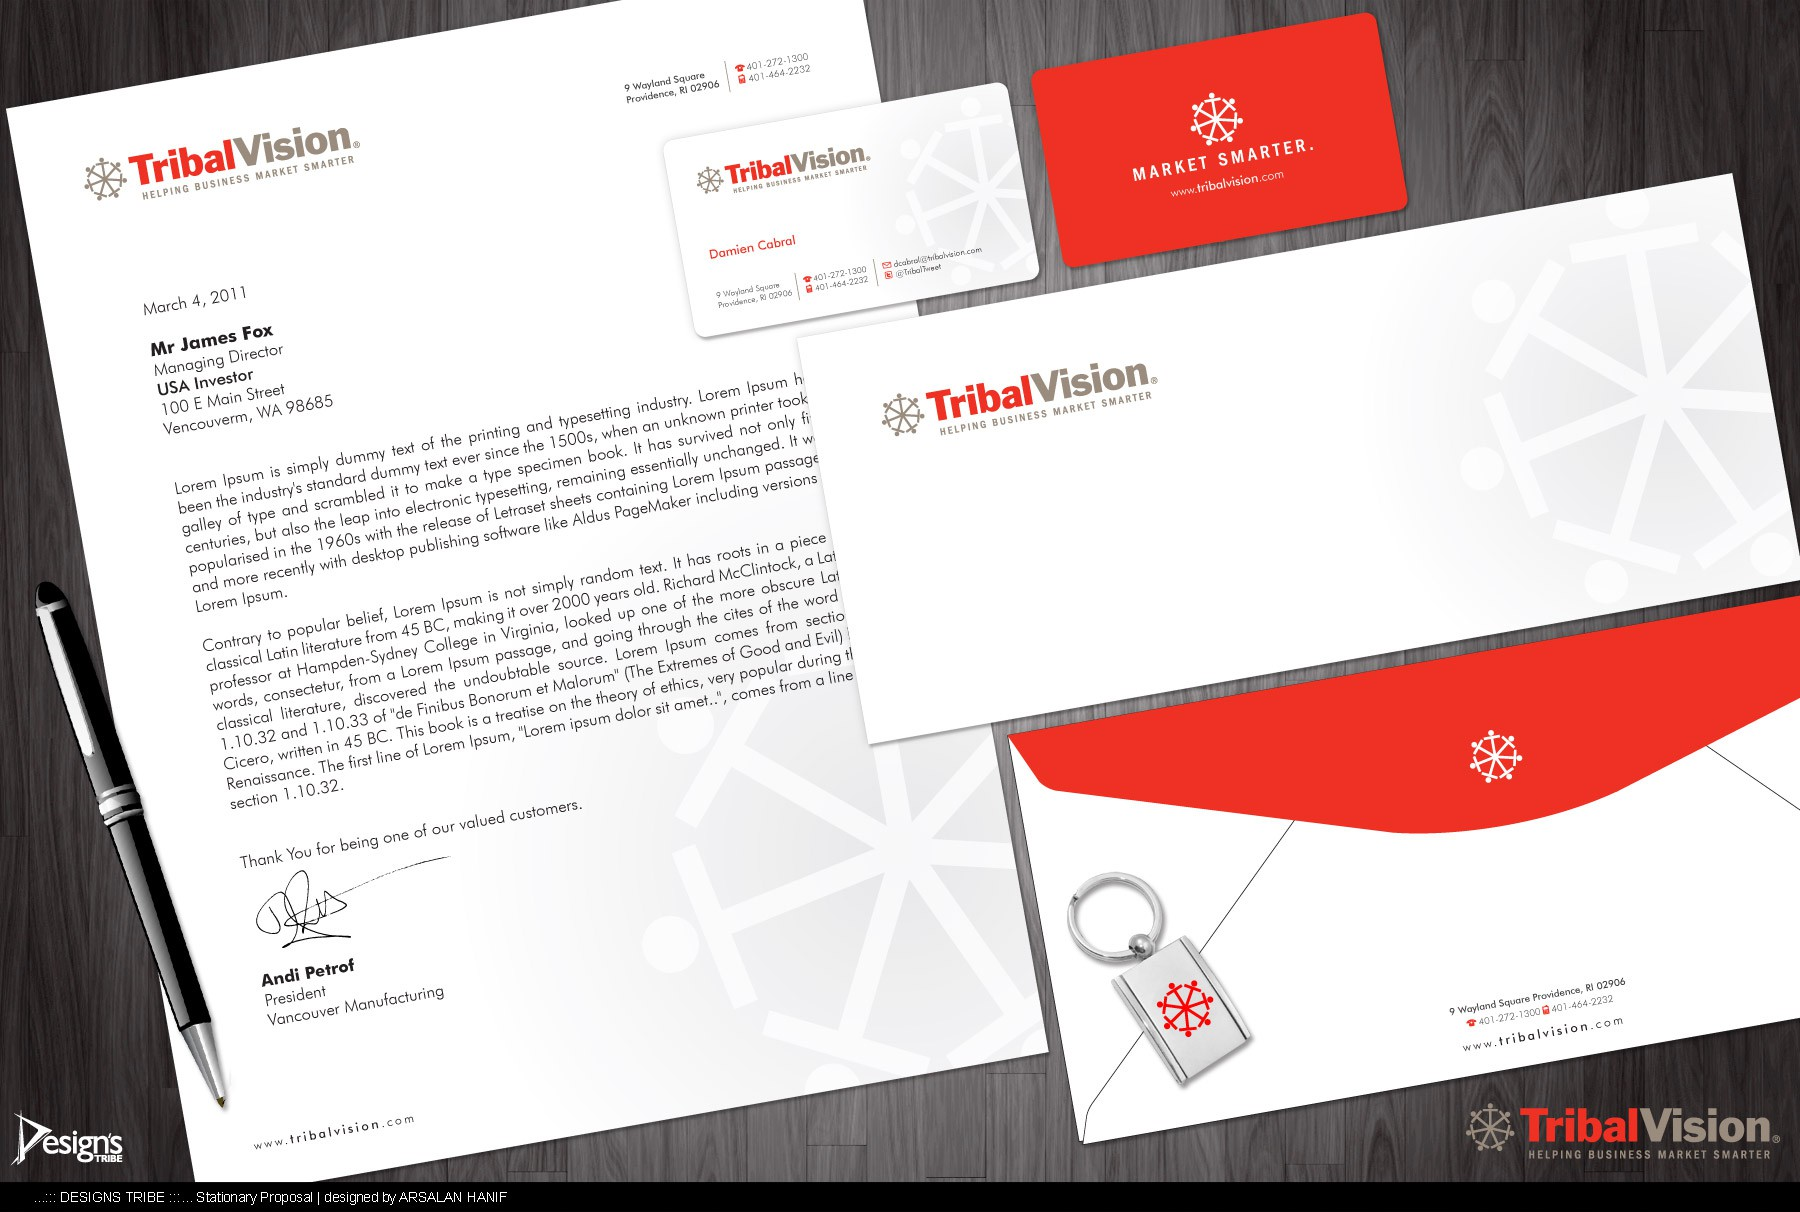 New Business Card and Stationery wanted for TribalVision